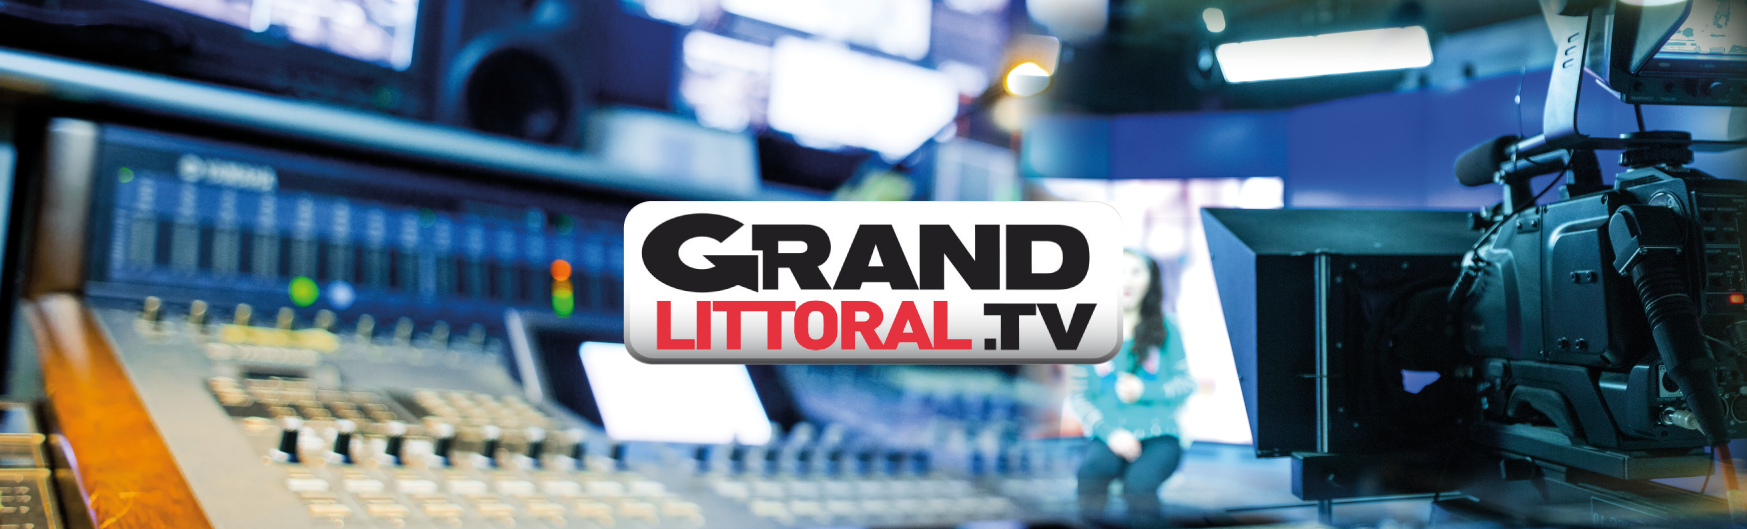 Grand littroal TV